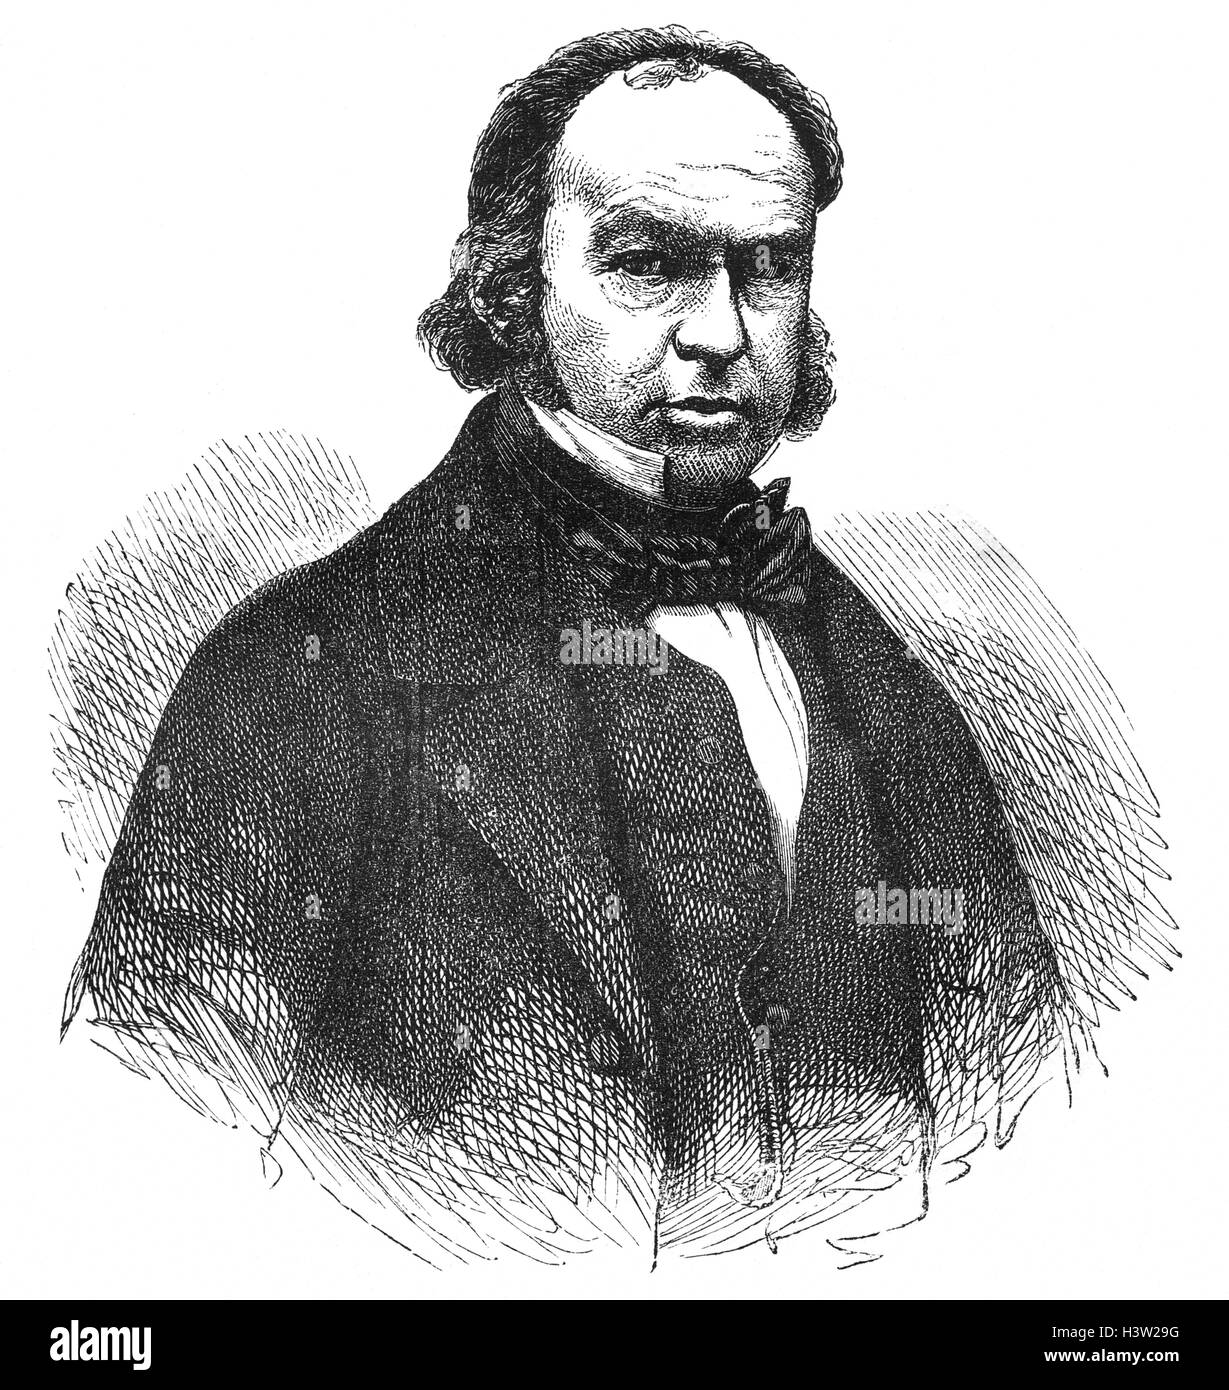 Isambard Kingdom Brunel (1806 – 1859), was an English mechanical and civil engineer who is considered 'one of - Stock Image